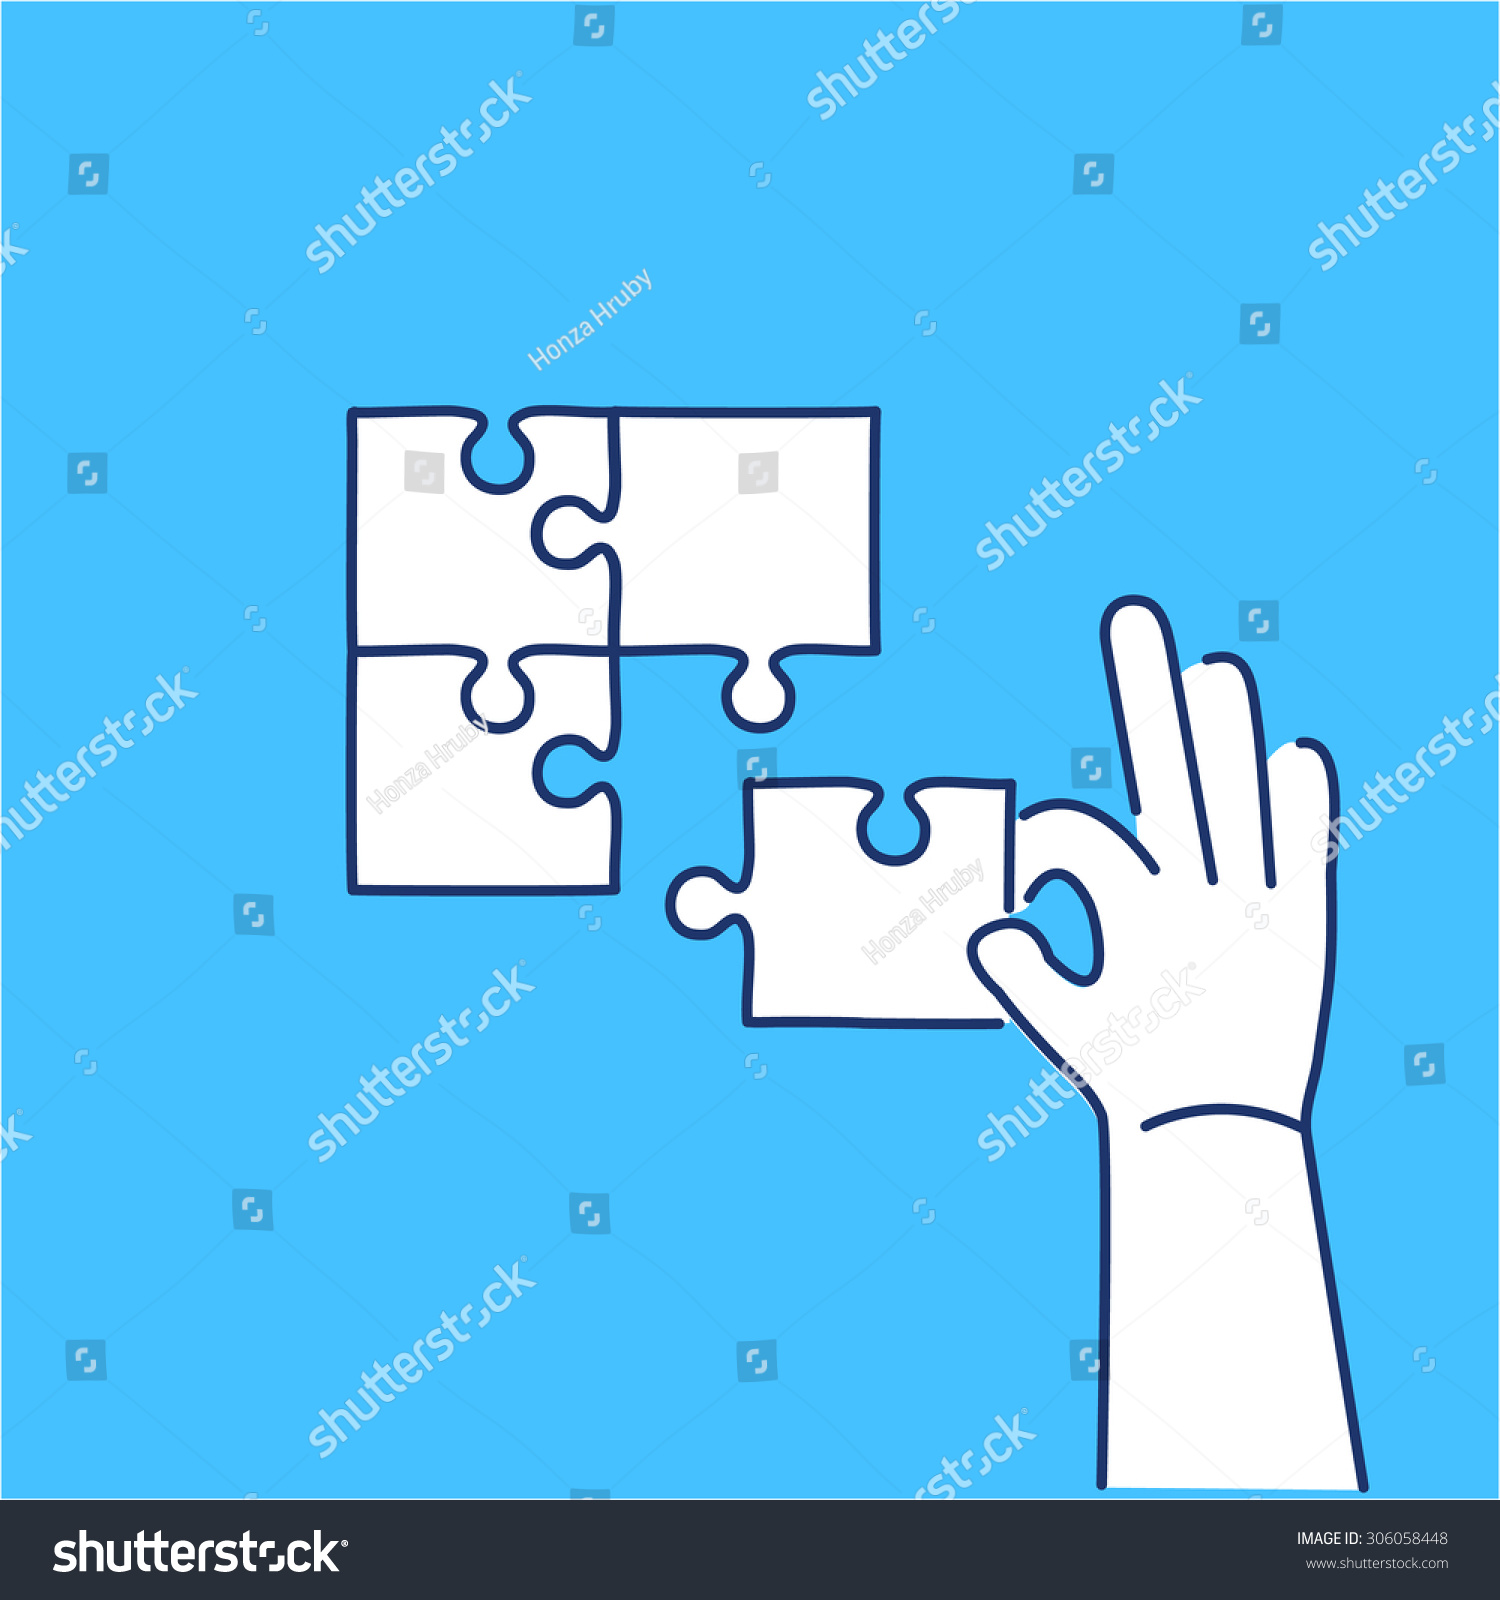 vector skills icon building puzzle finding stock vector  vector skills icon of building puzzle finding solution modern flat design soft skills linear illustration